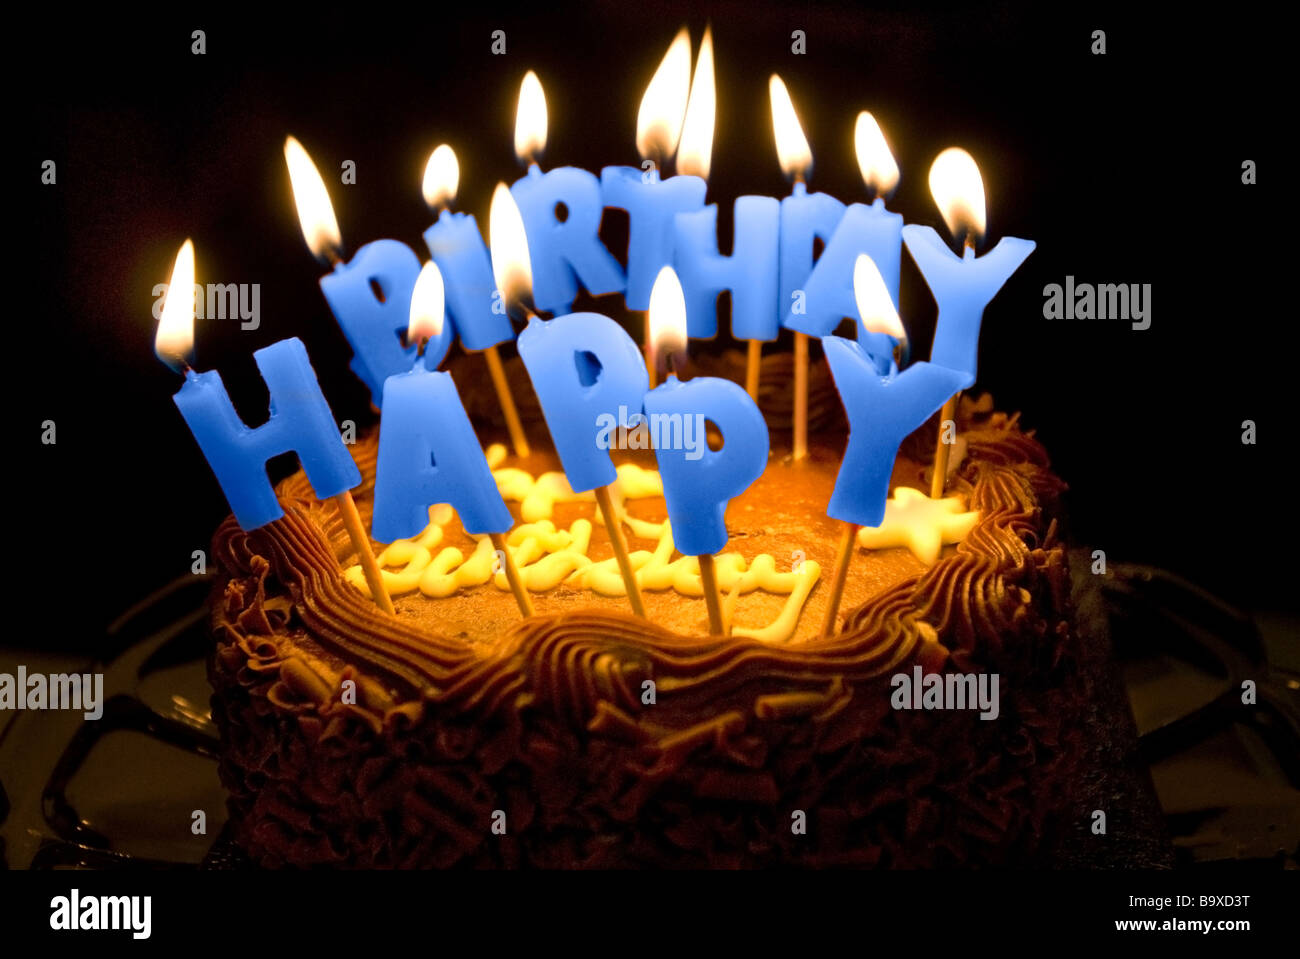 A Birthday Cake With Lighted Letter Candles Spelling Happy